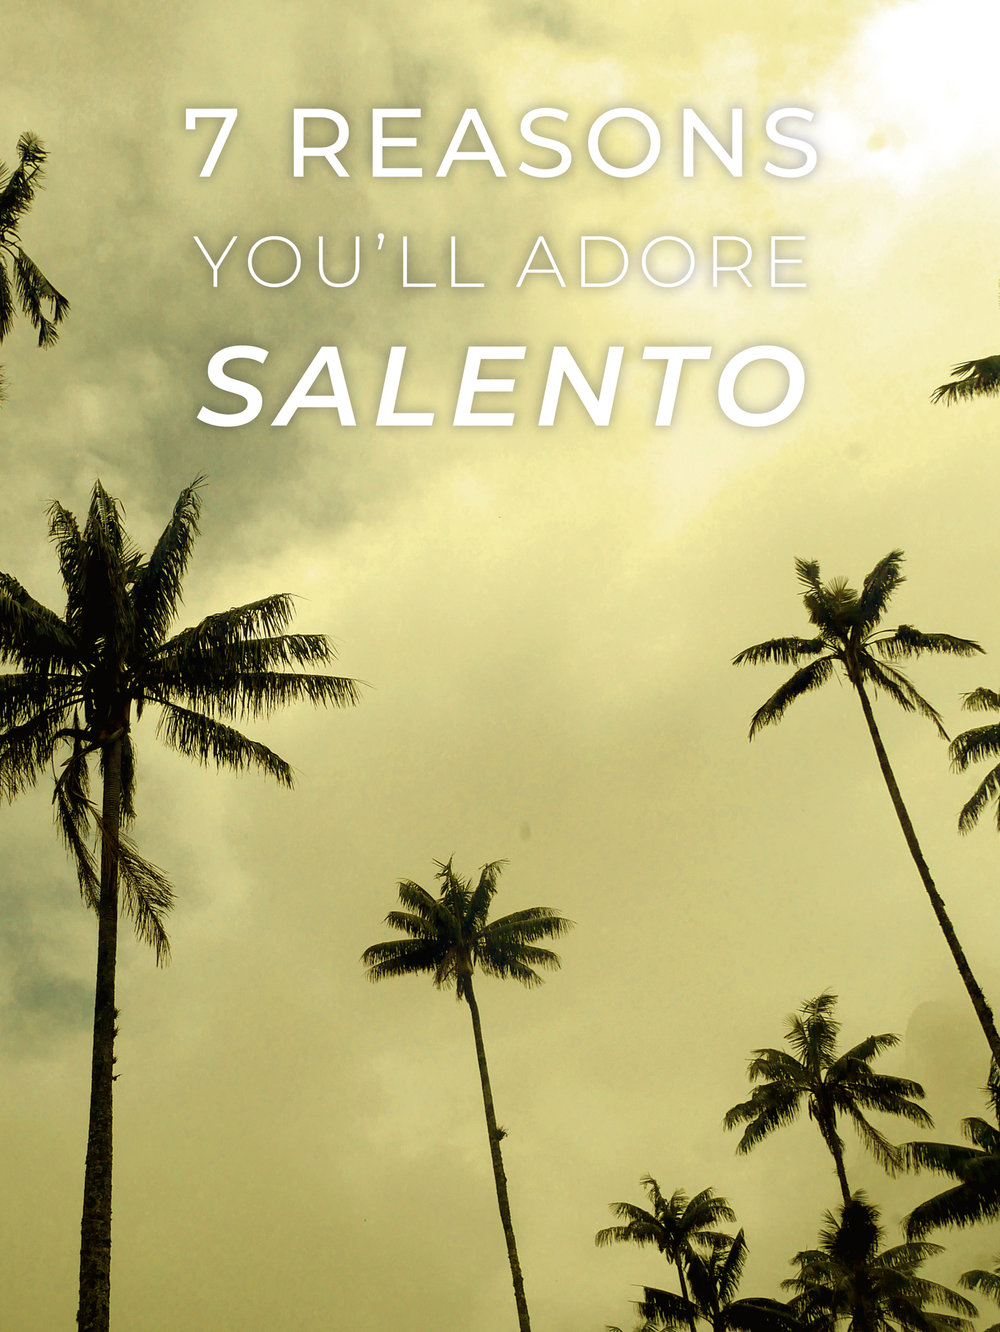 7 Reasons You'll Adore Salento